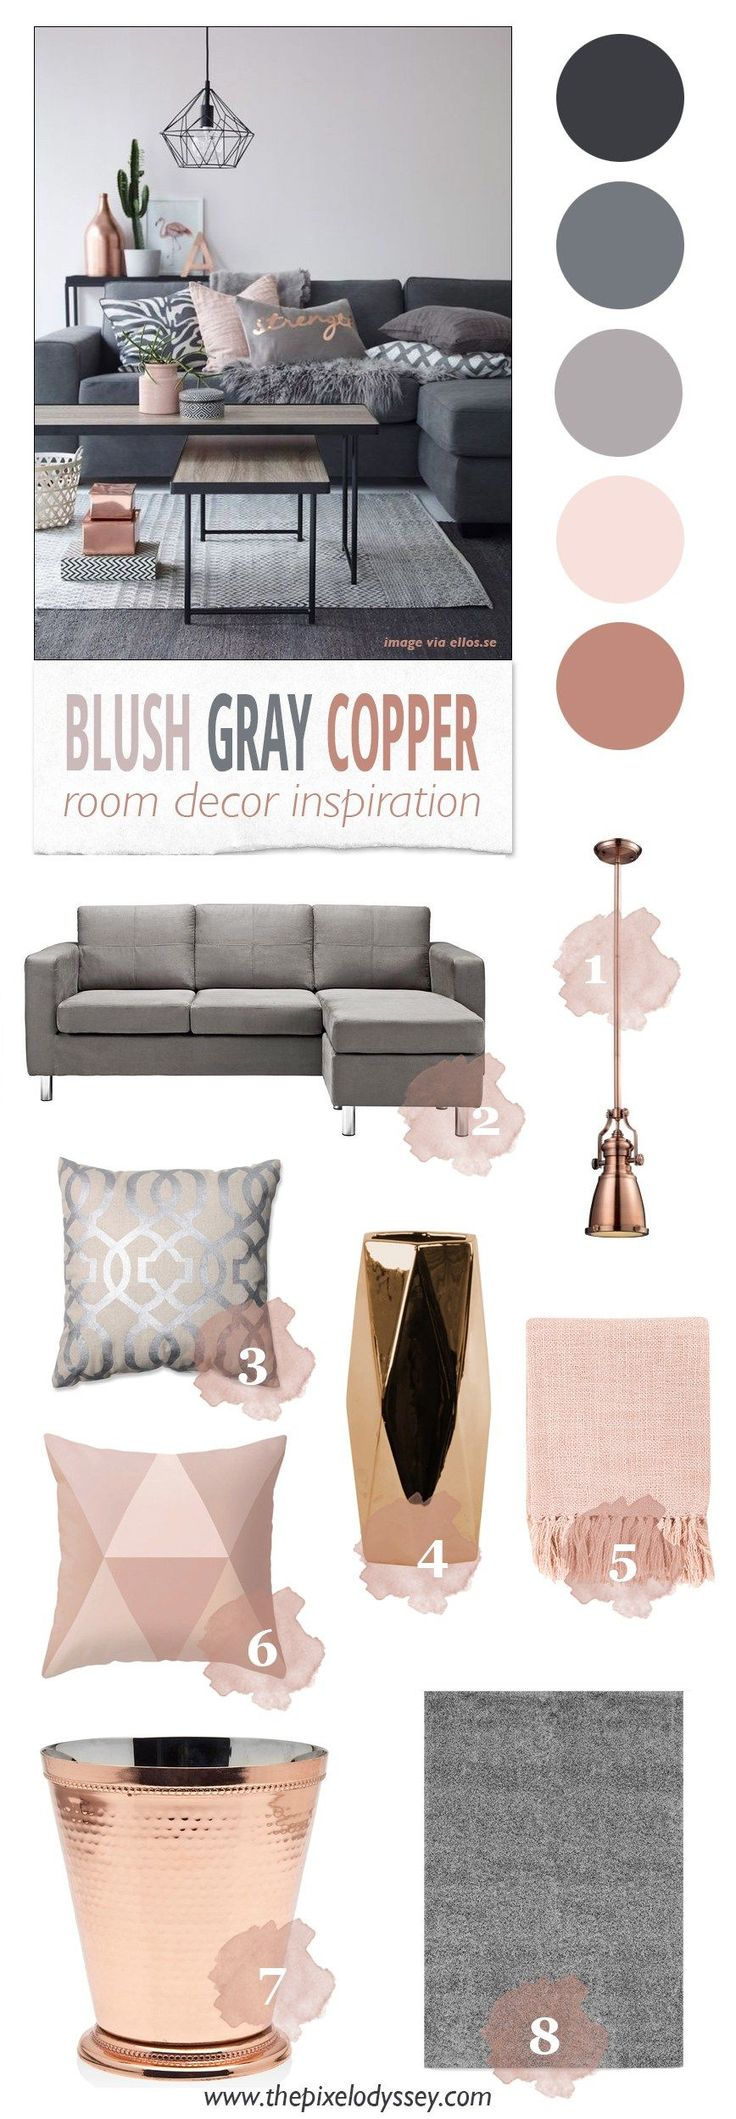 best 25+ lounge decor ideas on pinterest | grey lounge, apartment